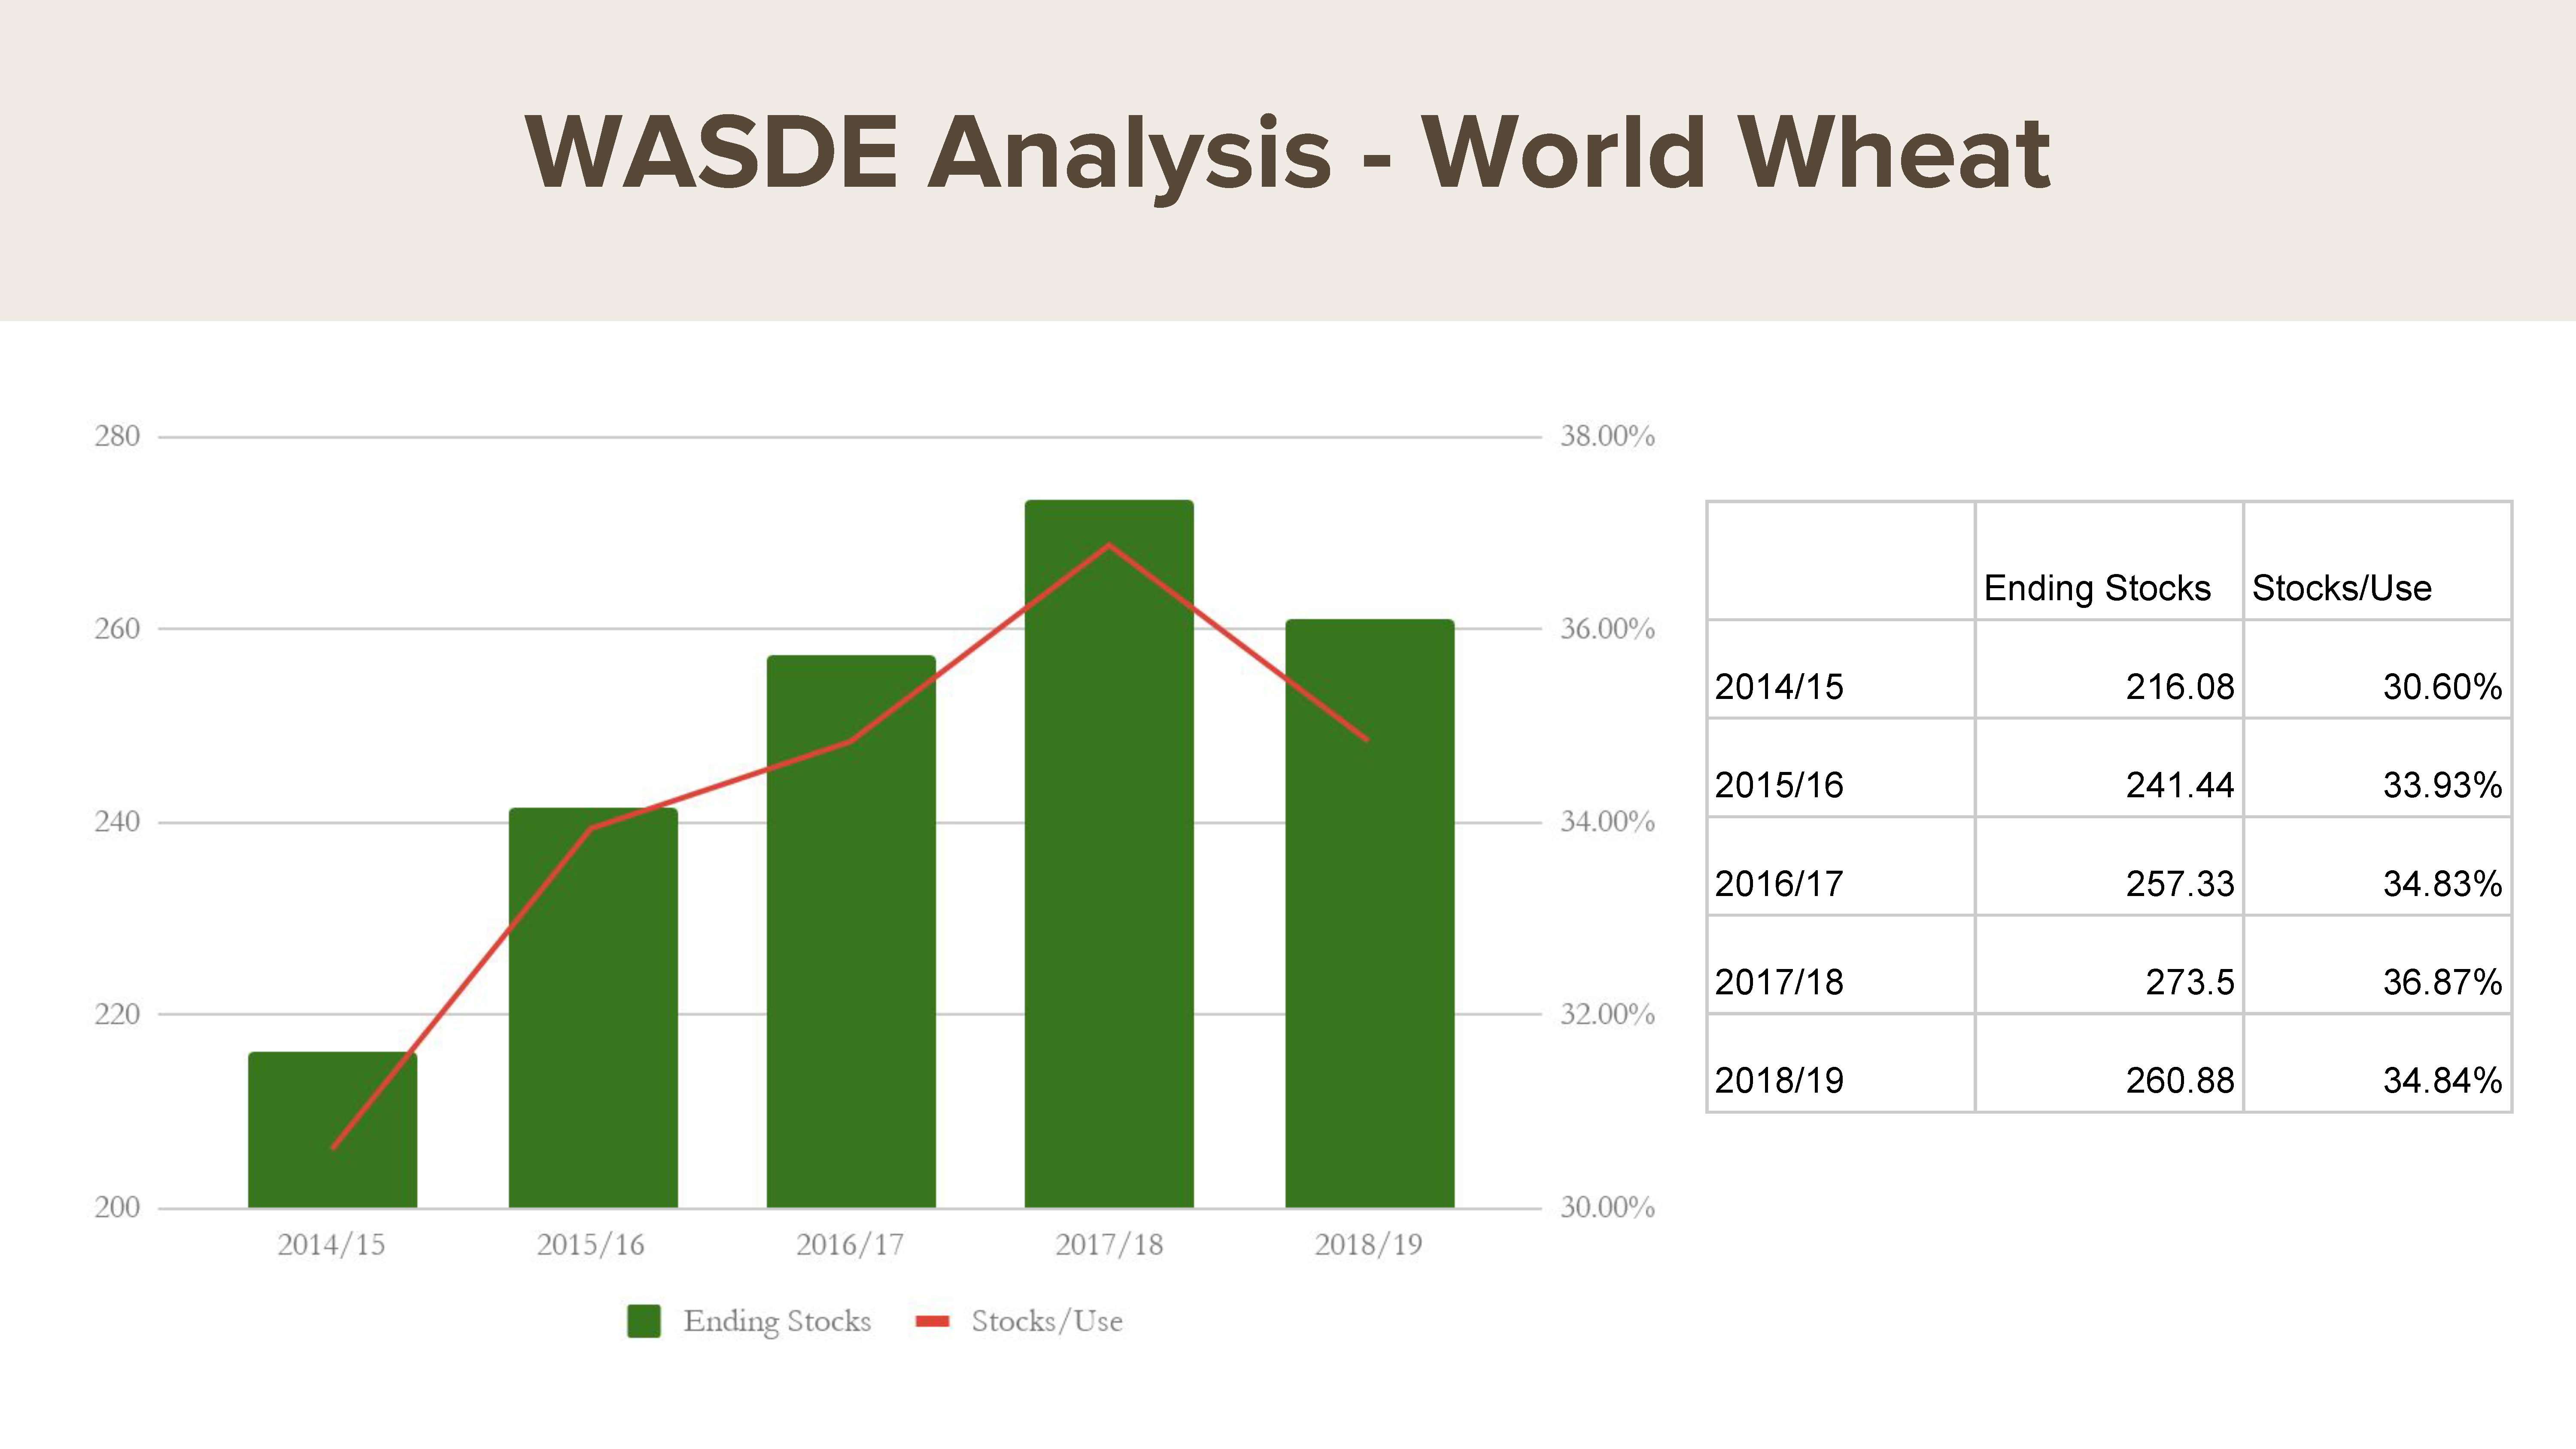 July WASDE: world wheat stocks-to-use ratio